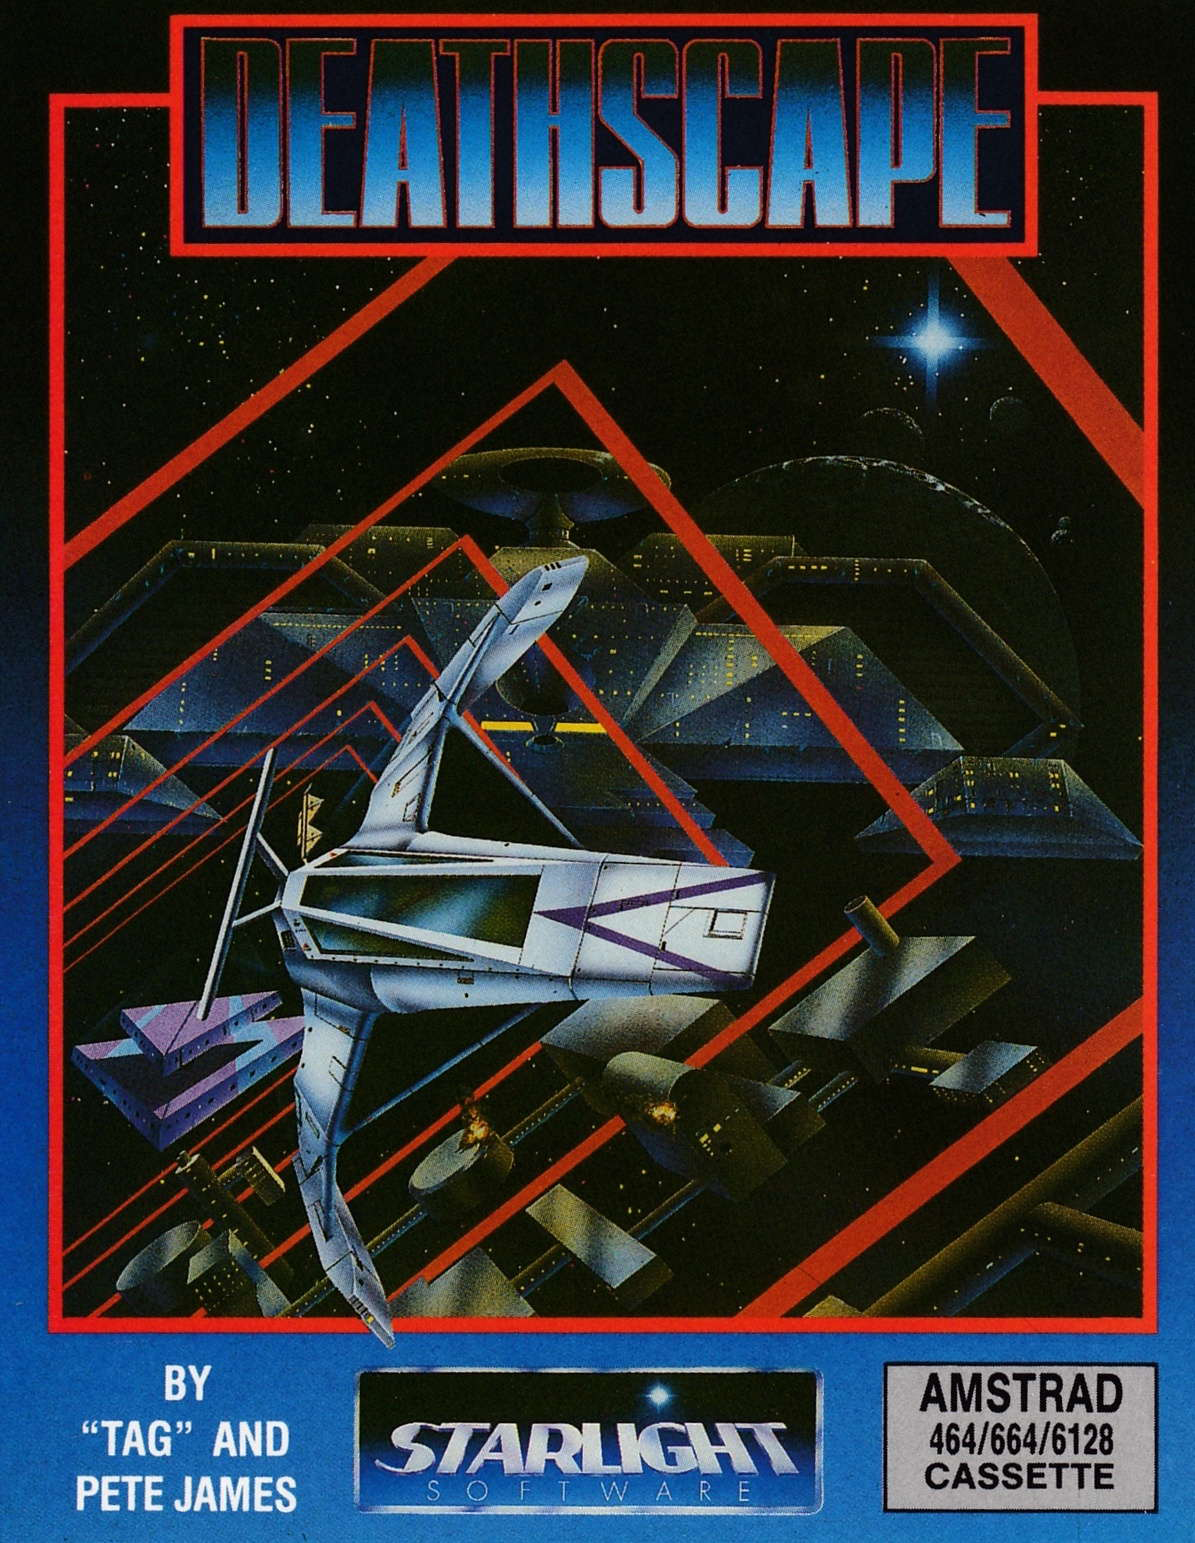 cover of the Amstrad CPC game Deathscape  by GameBase CPC